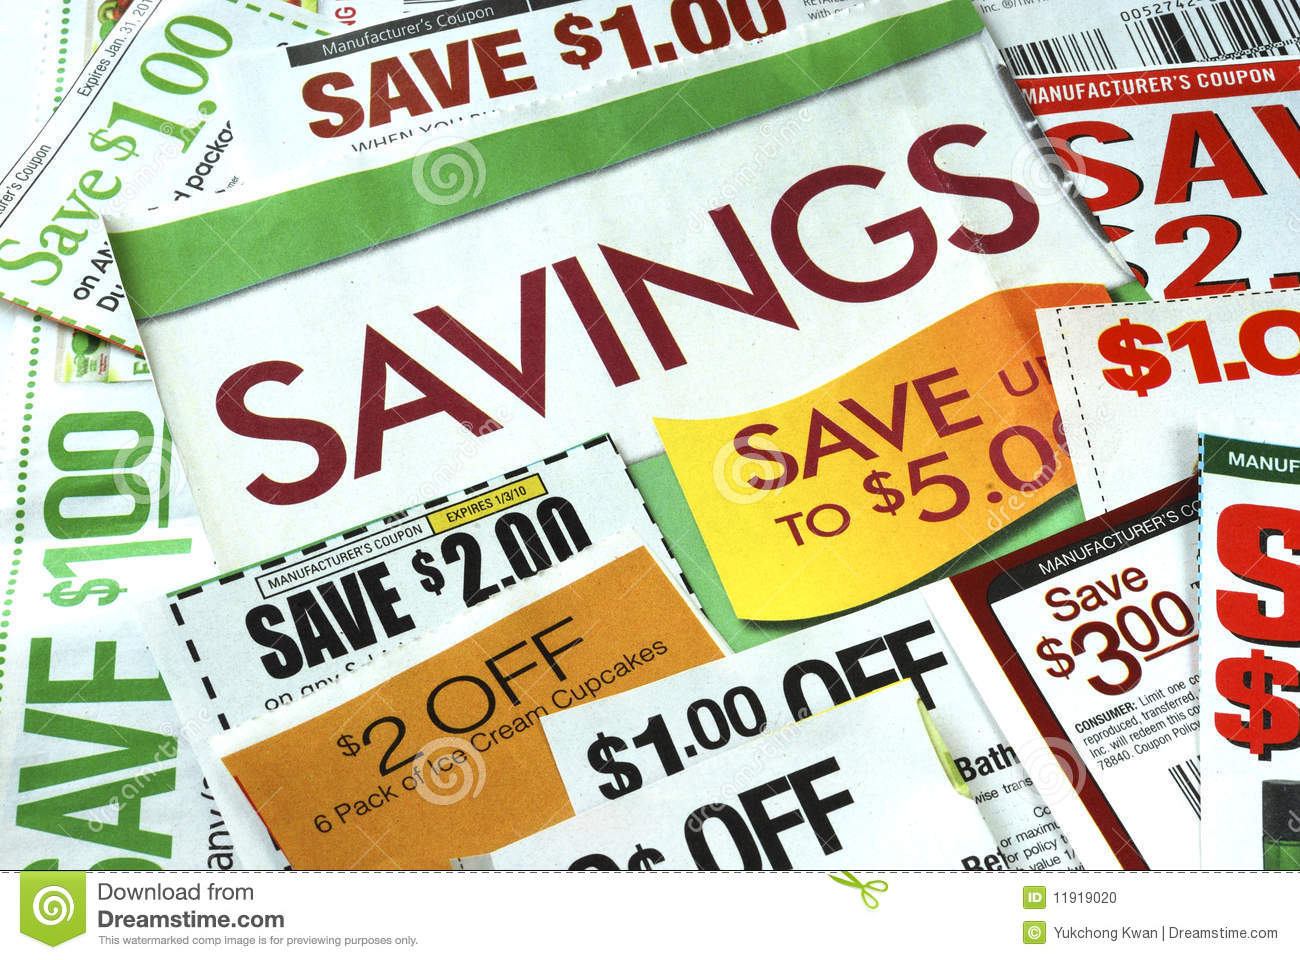 pestabrisimpedes.ml Mobile App. Save $s with free paperless grocery coupons at your favorite stores! Link your store loyalty cards, add coupons, then shop and save. Get App; Coupon Codes. Shop online with coupon codes from top retailers. Get Sears coupons, Best Buy coupons, and enjoy great savings with a Nordstrom promo code.